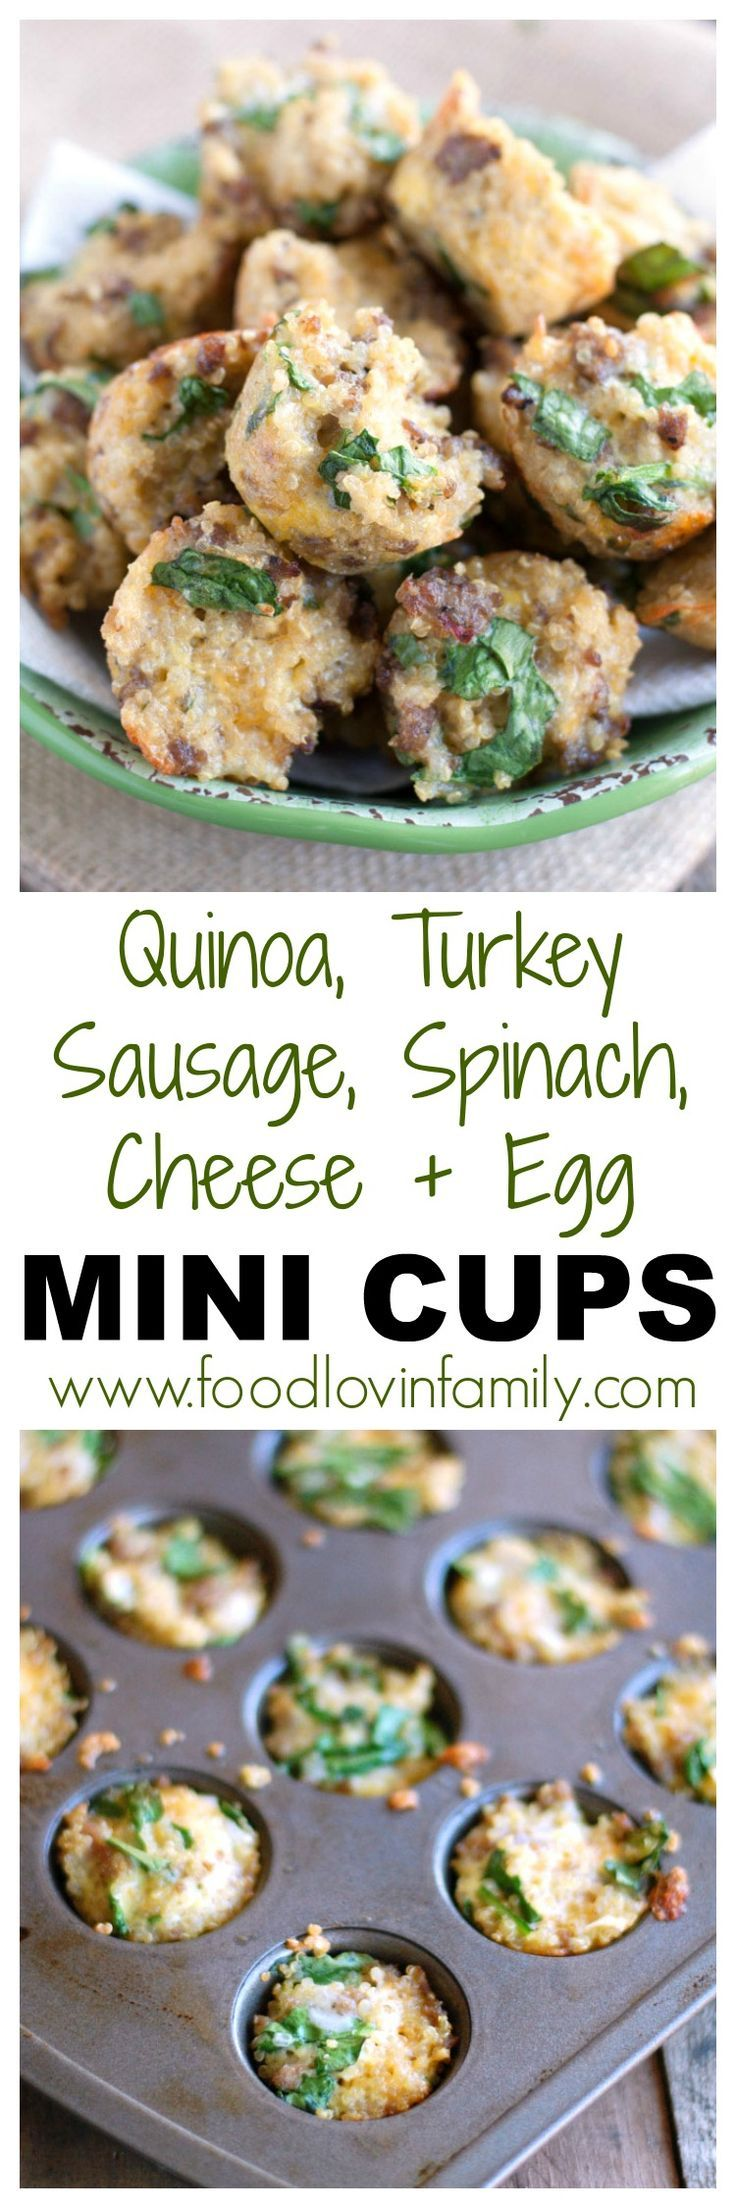 Quinoa, Turkey Sausage, Spinach, Egg, Cheese Mini Cups | breakfast bites| Quinoa| breakfast muffin| These quinoa mini cups make a great portable breakfast. Make them ahead of time and have them all week. http://www.foodlovinfamily.com/quinoa-turkey-sausag